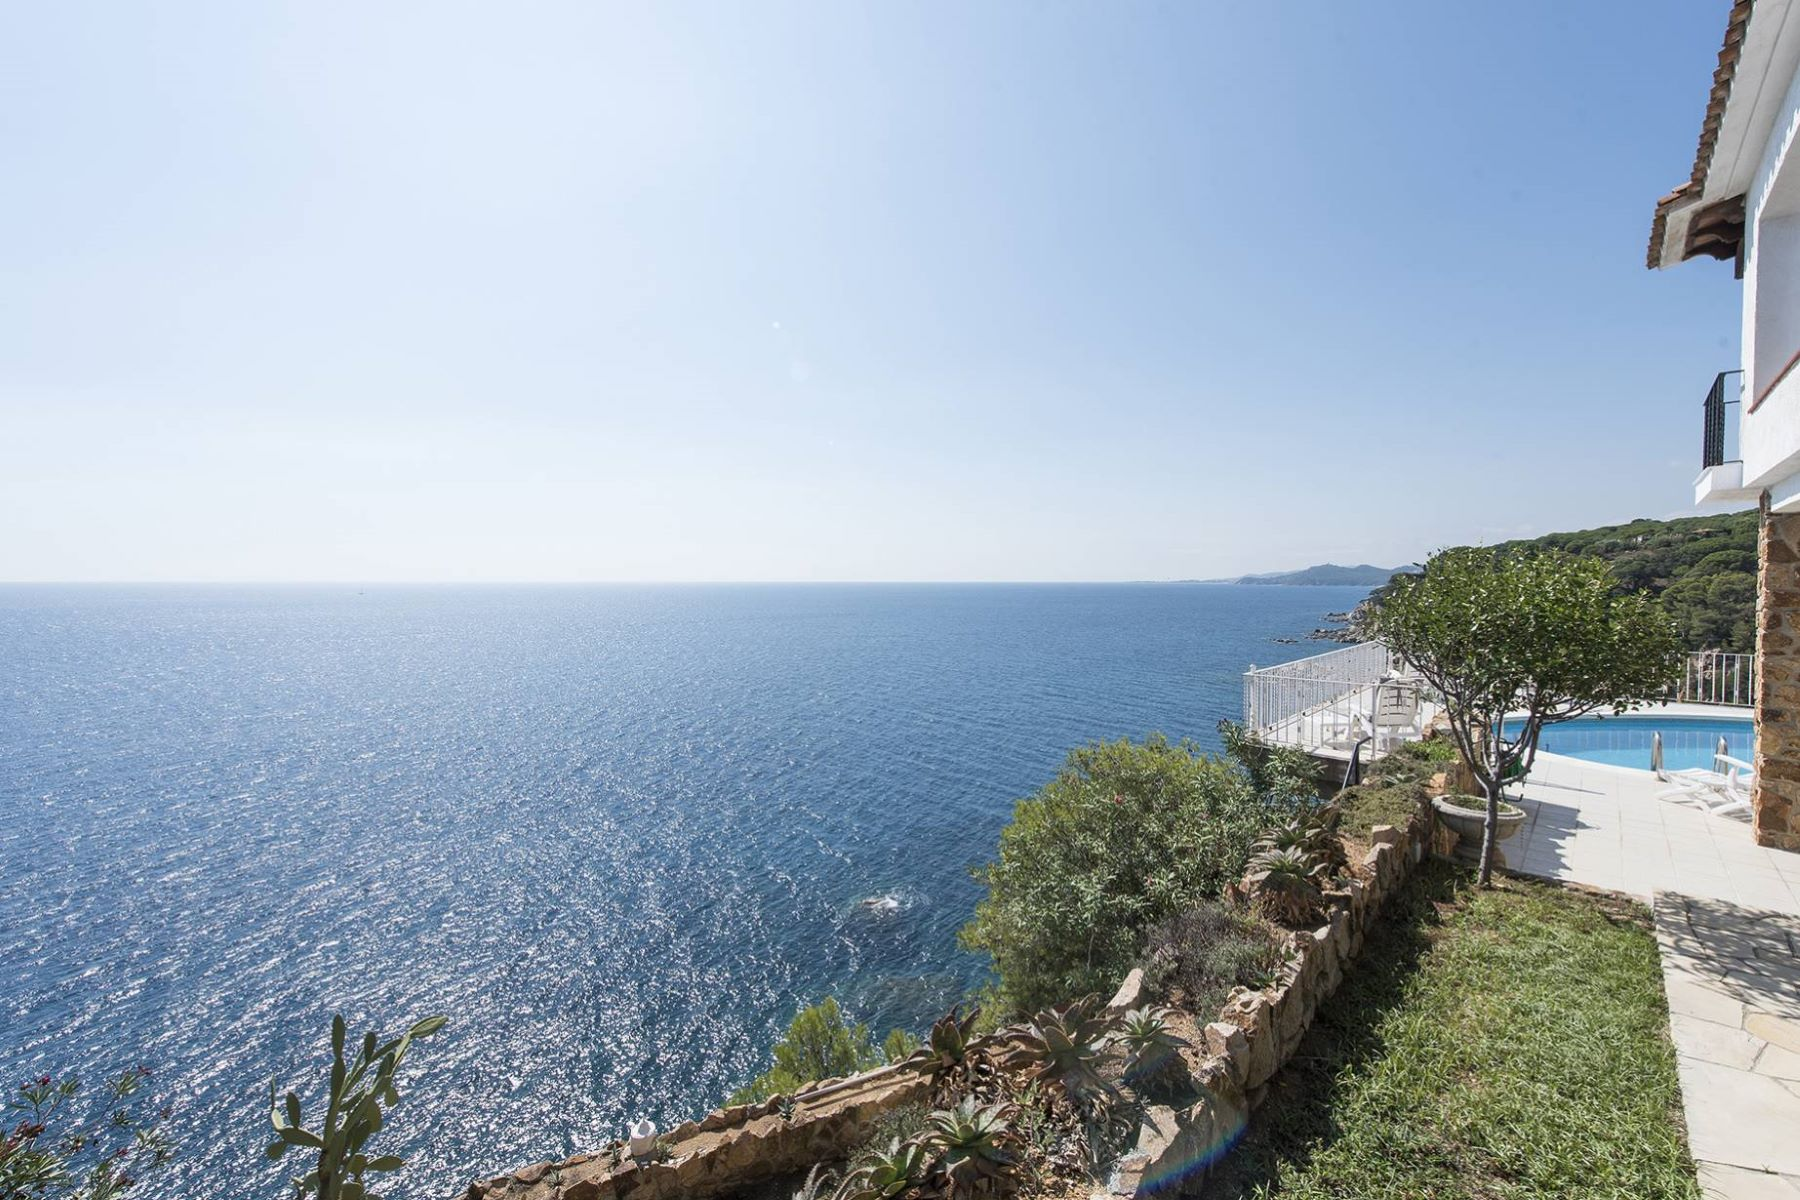 Single Family Home for Sale at Spectacular location on the cliffs above the sea Lloret De Mar, Costa Brava, 17310 Spain